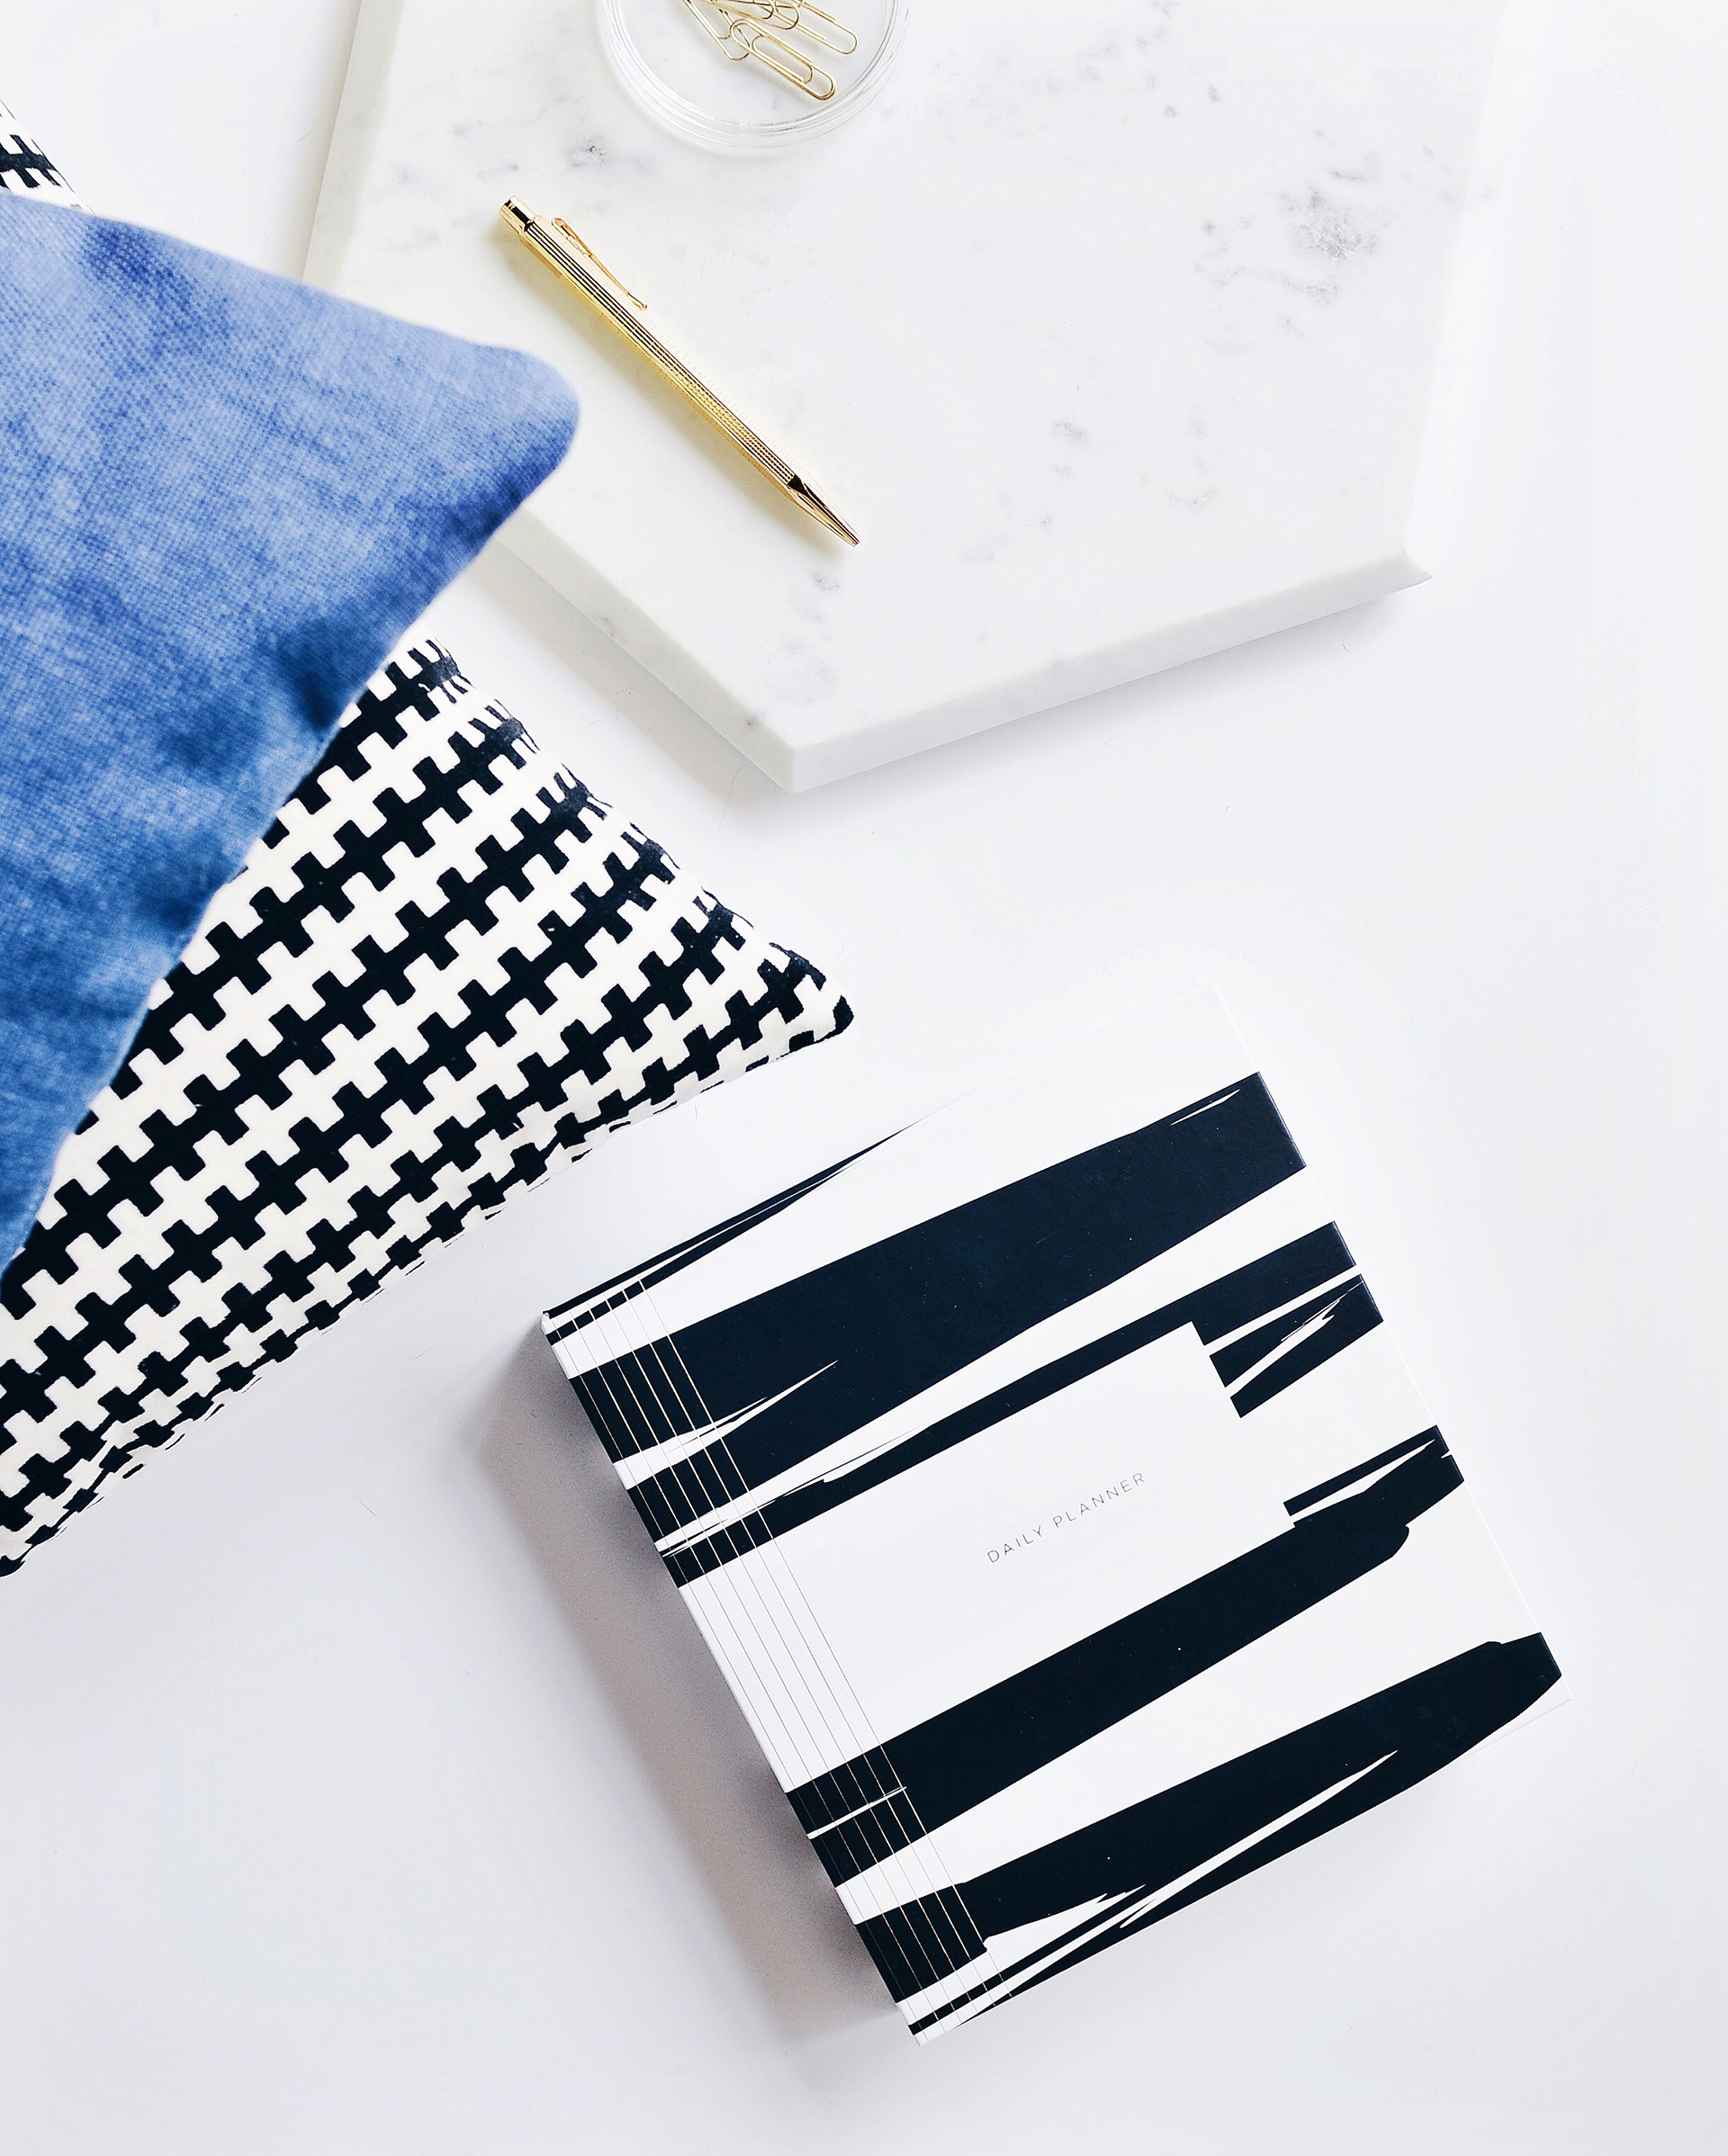 Reasons to love stationery this National Stationery Week